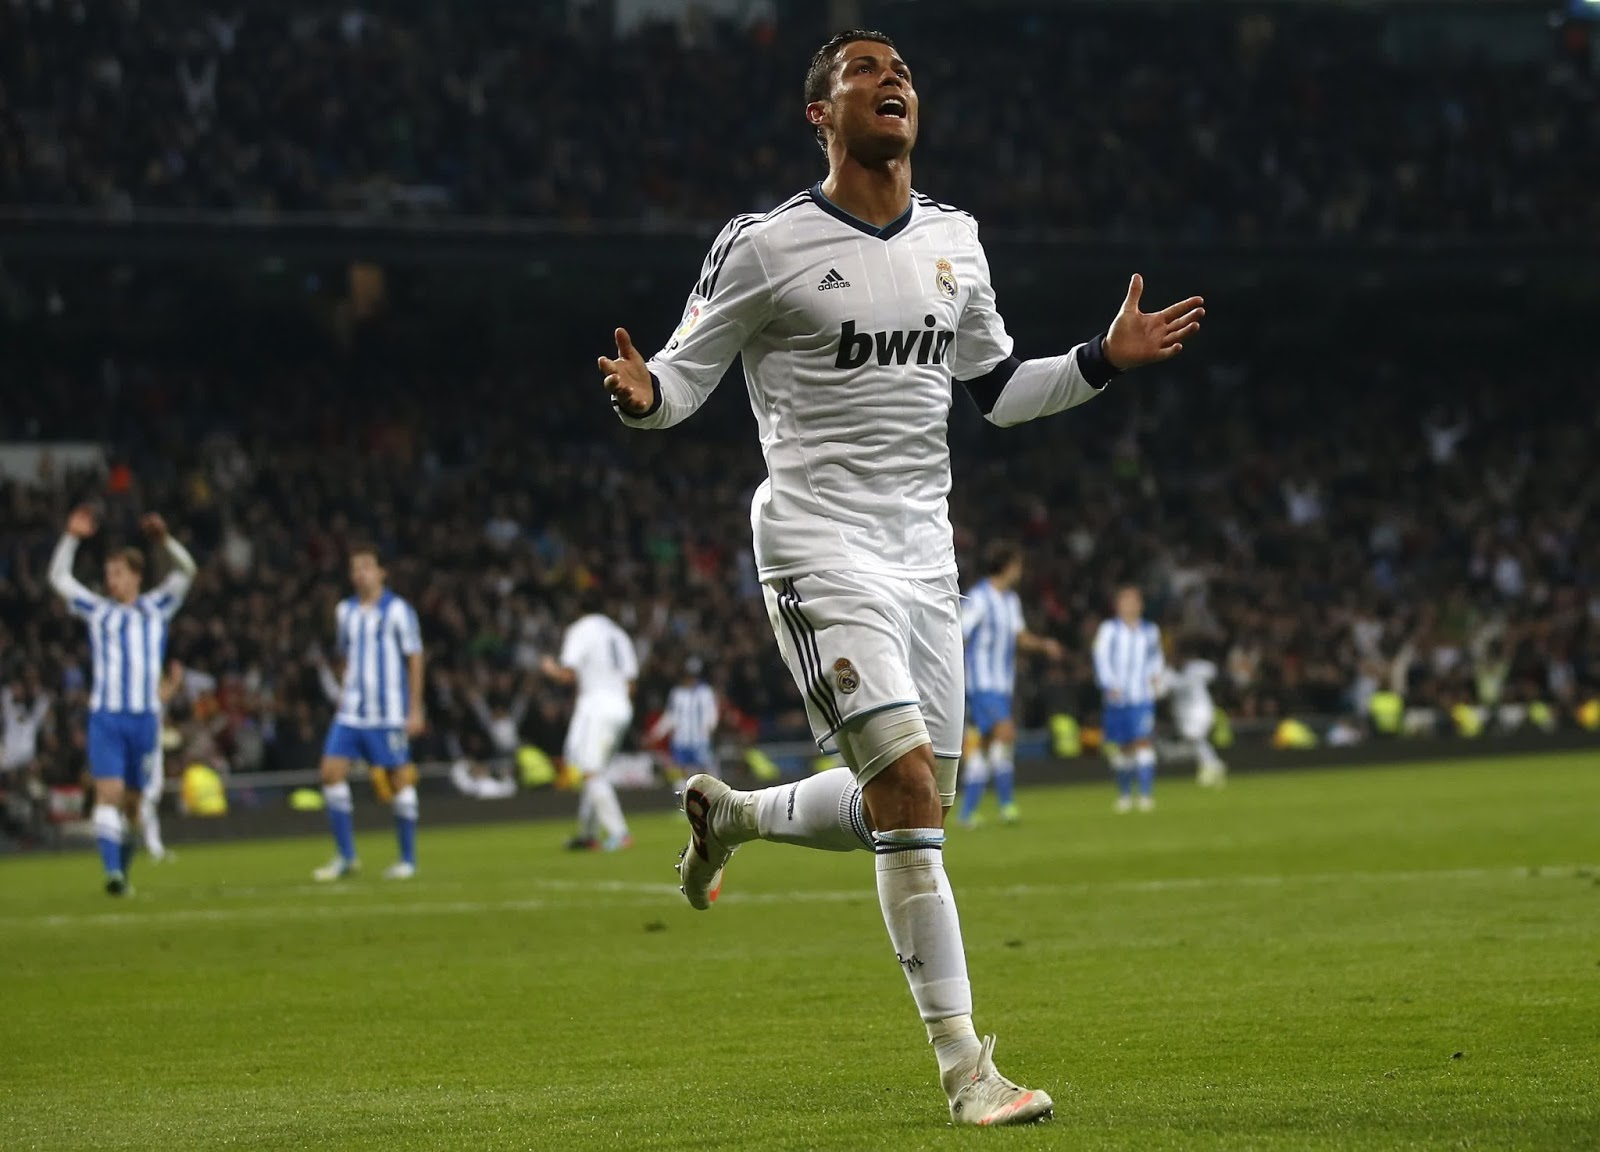 cristiano ronaldo goal celebration HD picture